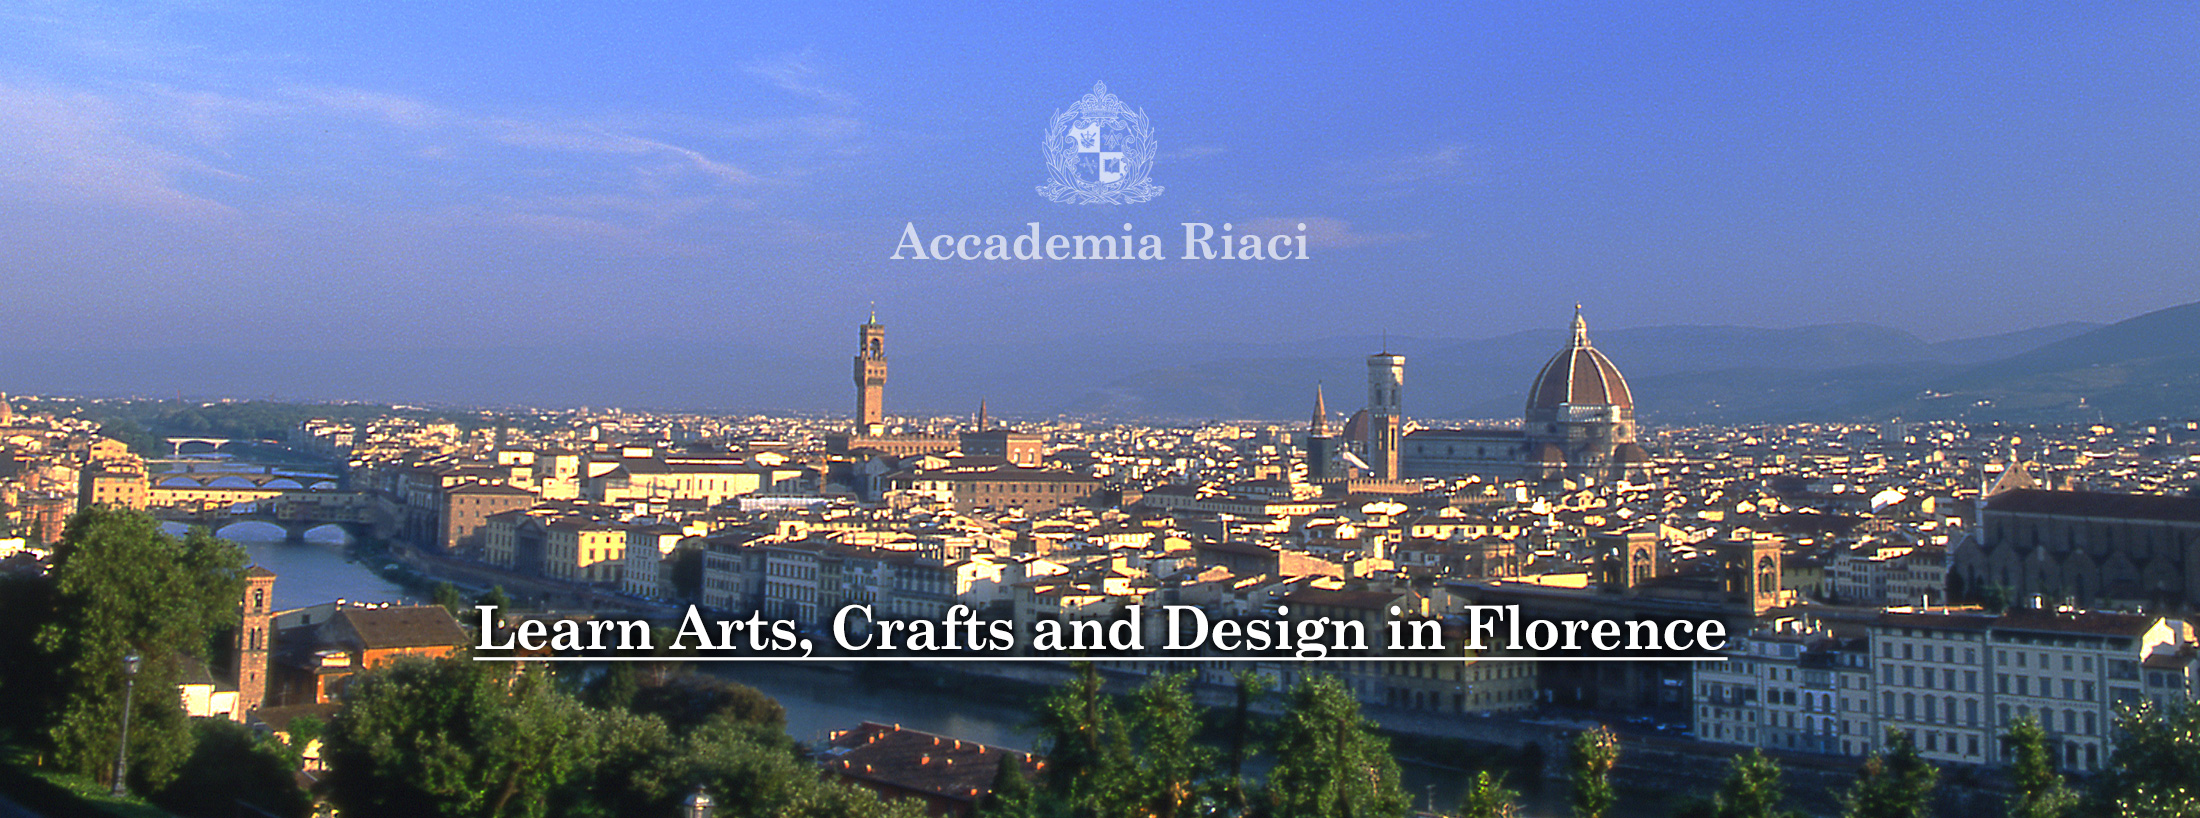 Learn Arts, Crafts and Design in Florence